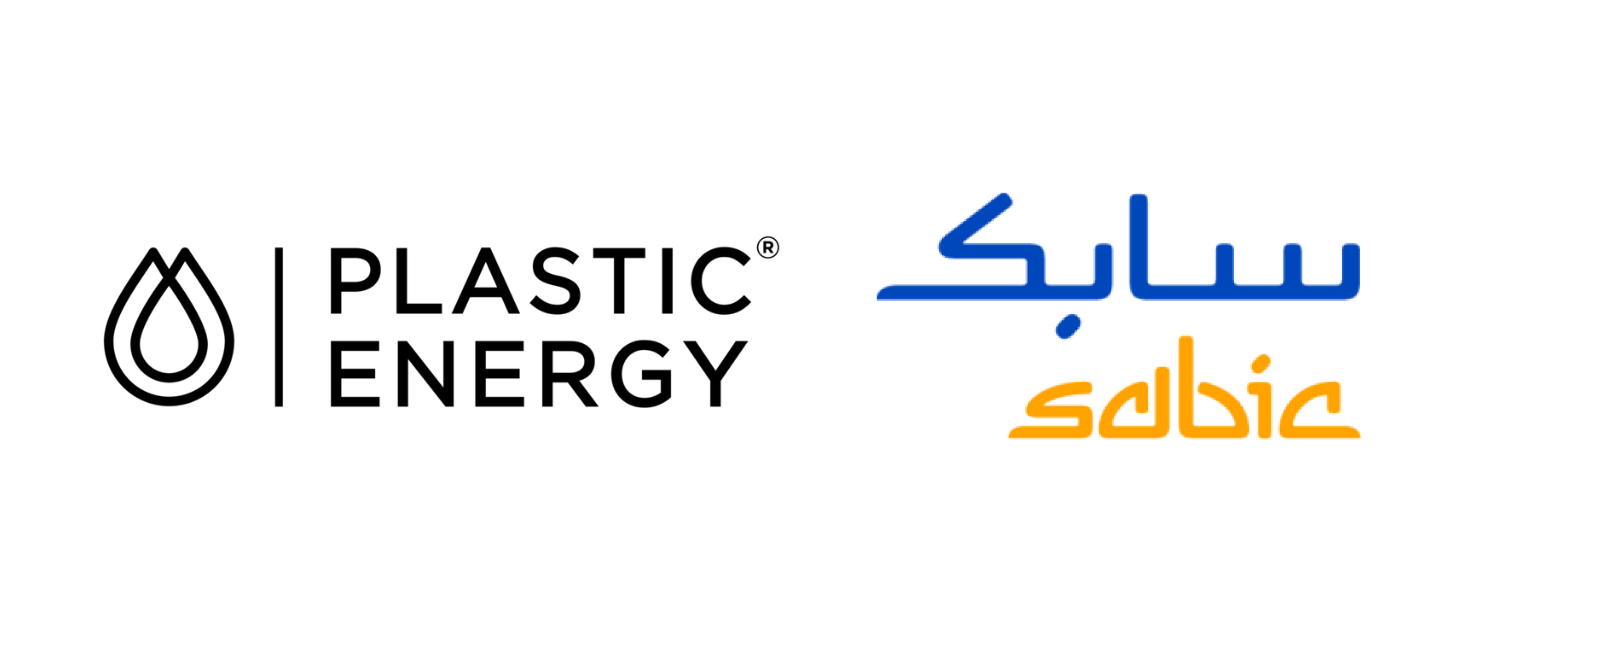 PRESS RELEASE: Sabic Signs MoU With PLASTIC ENERGY